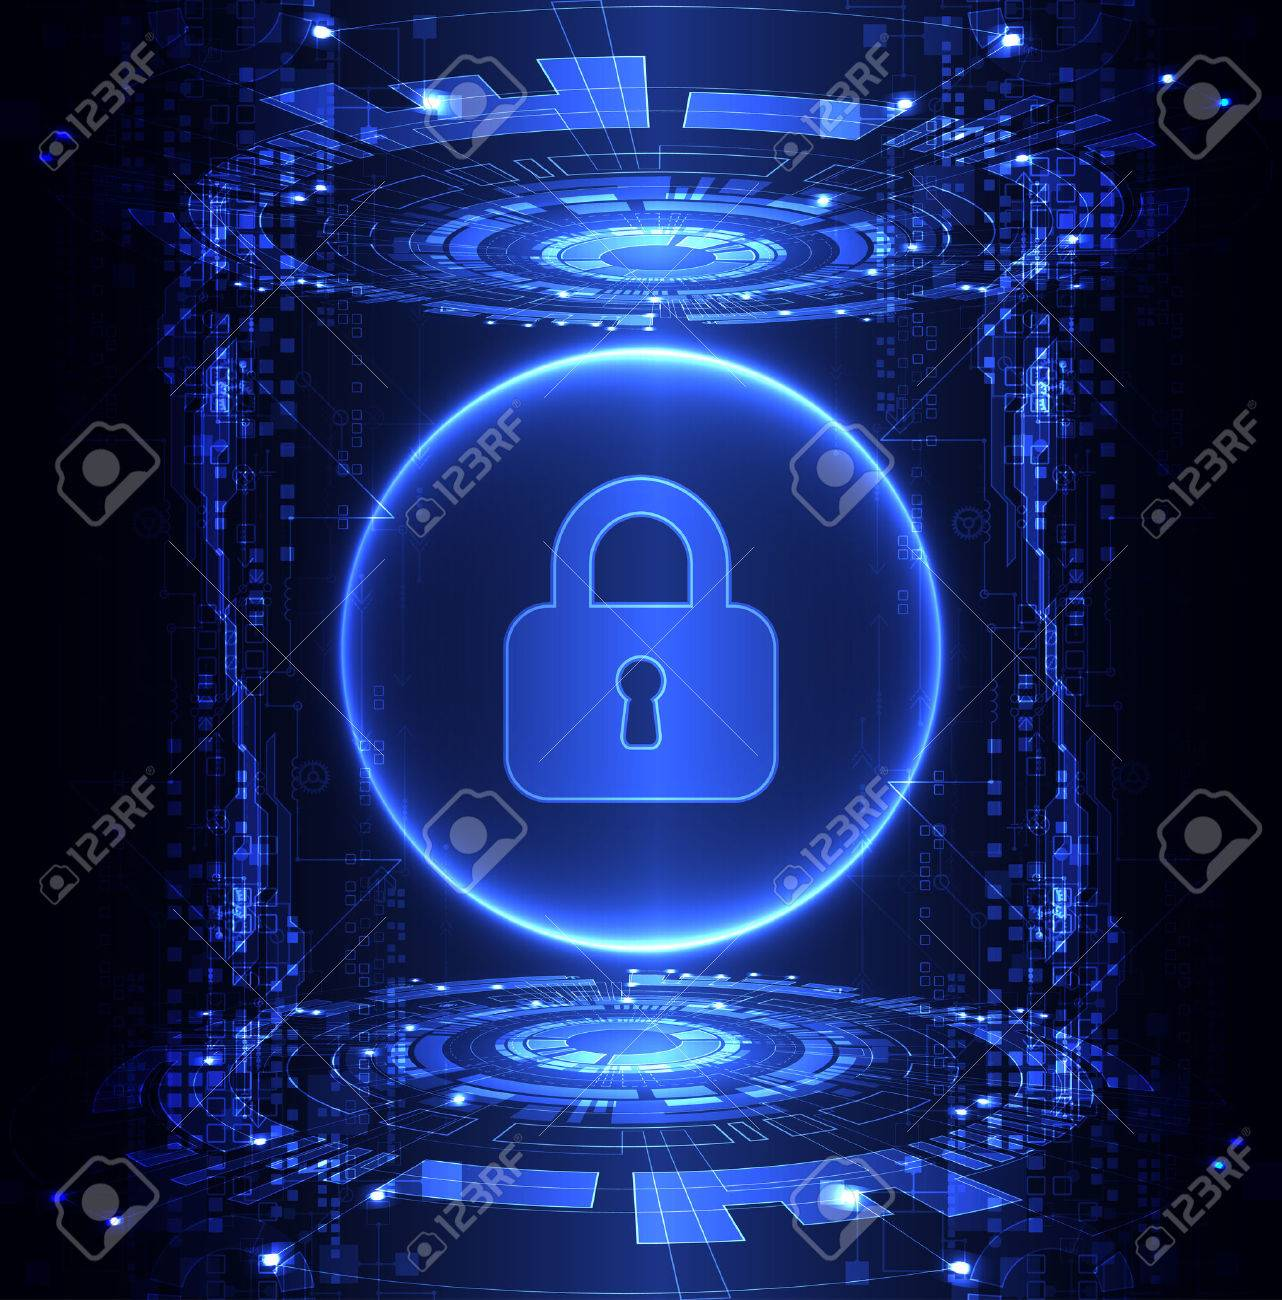 Protection concept of digital and technological. Protect mechanism, system privacy, vector illustration - 56575878